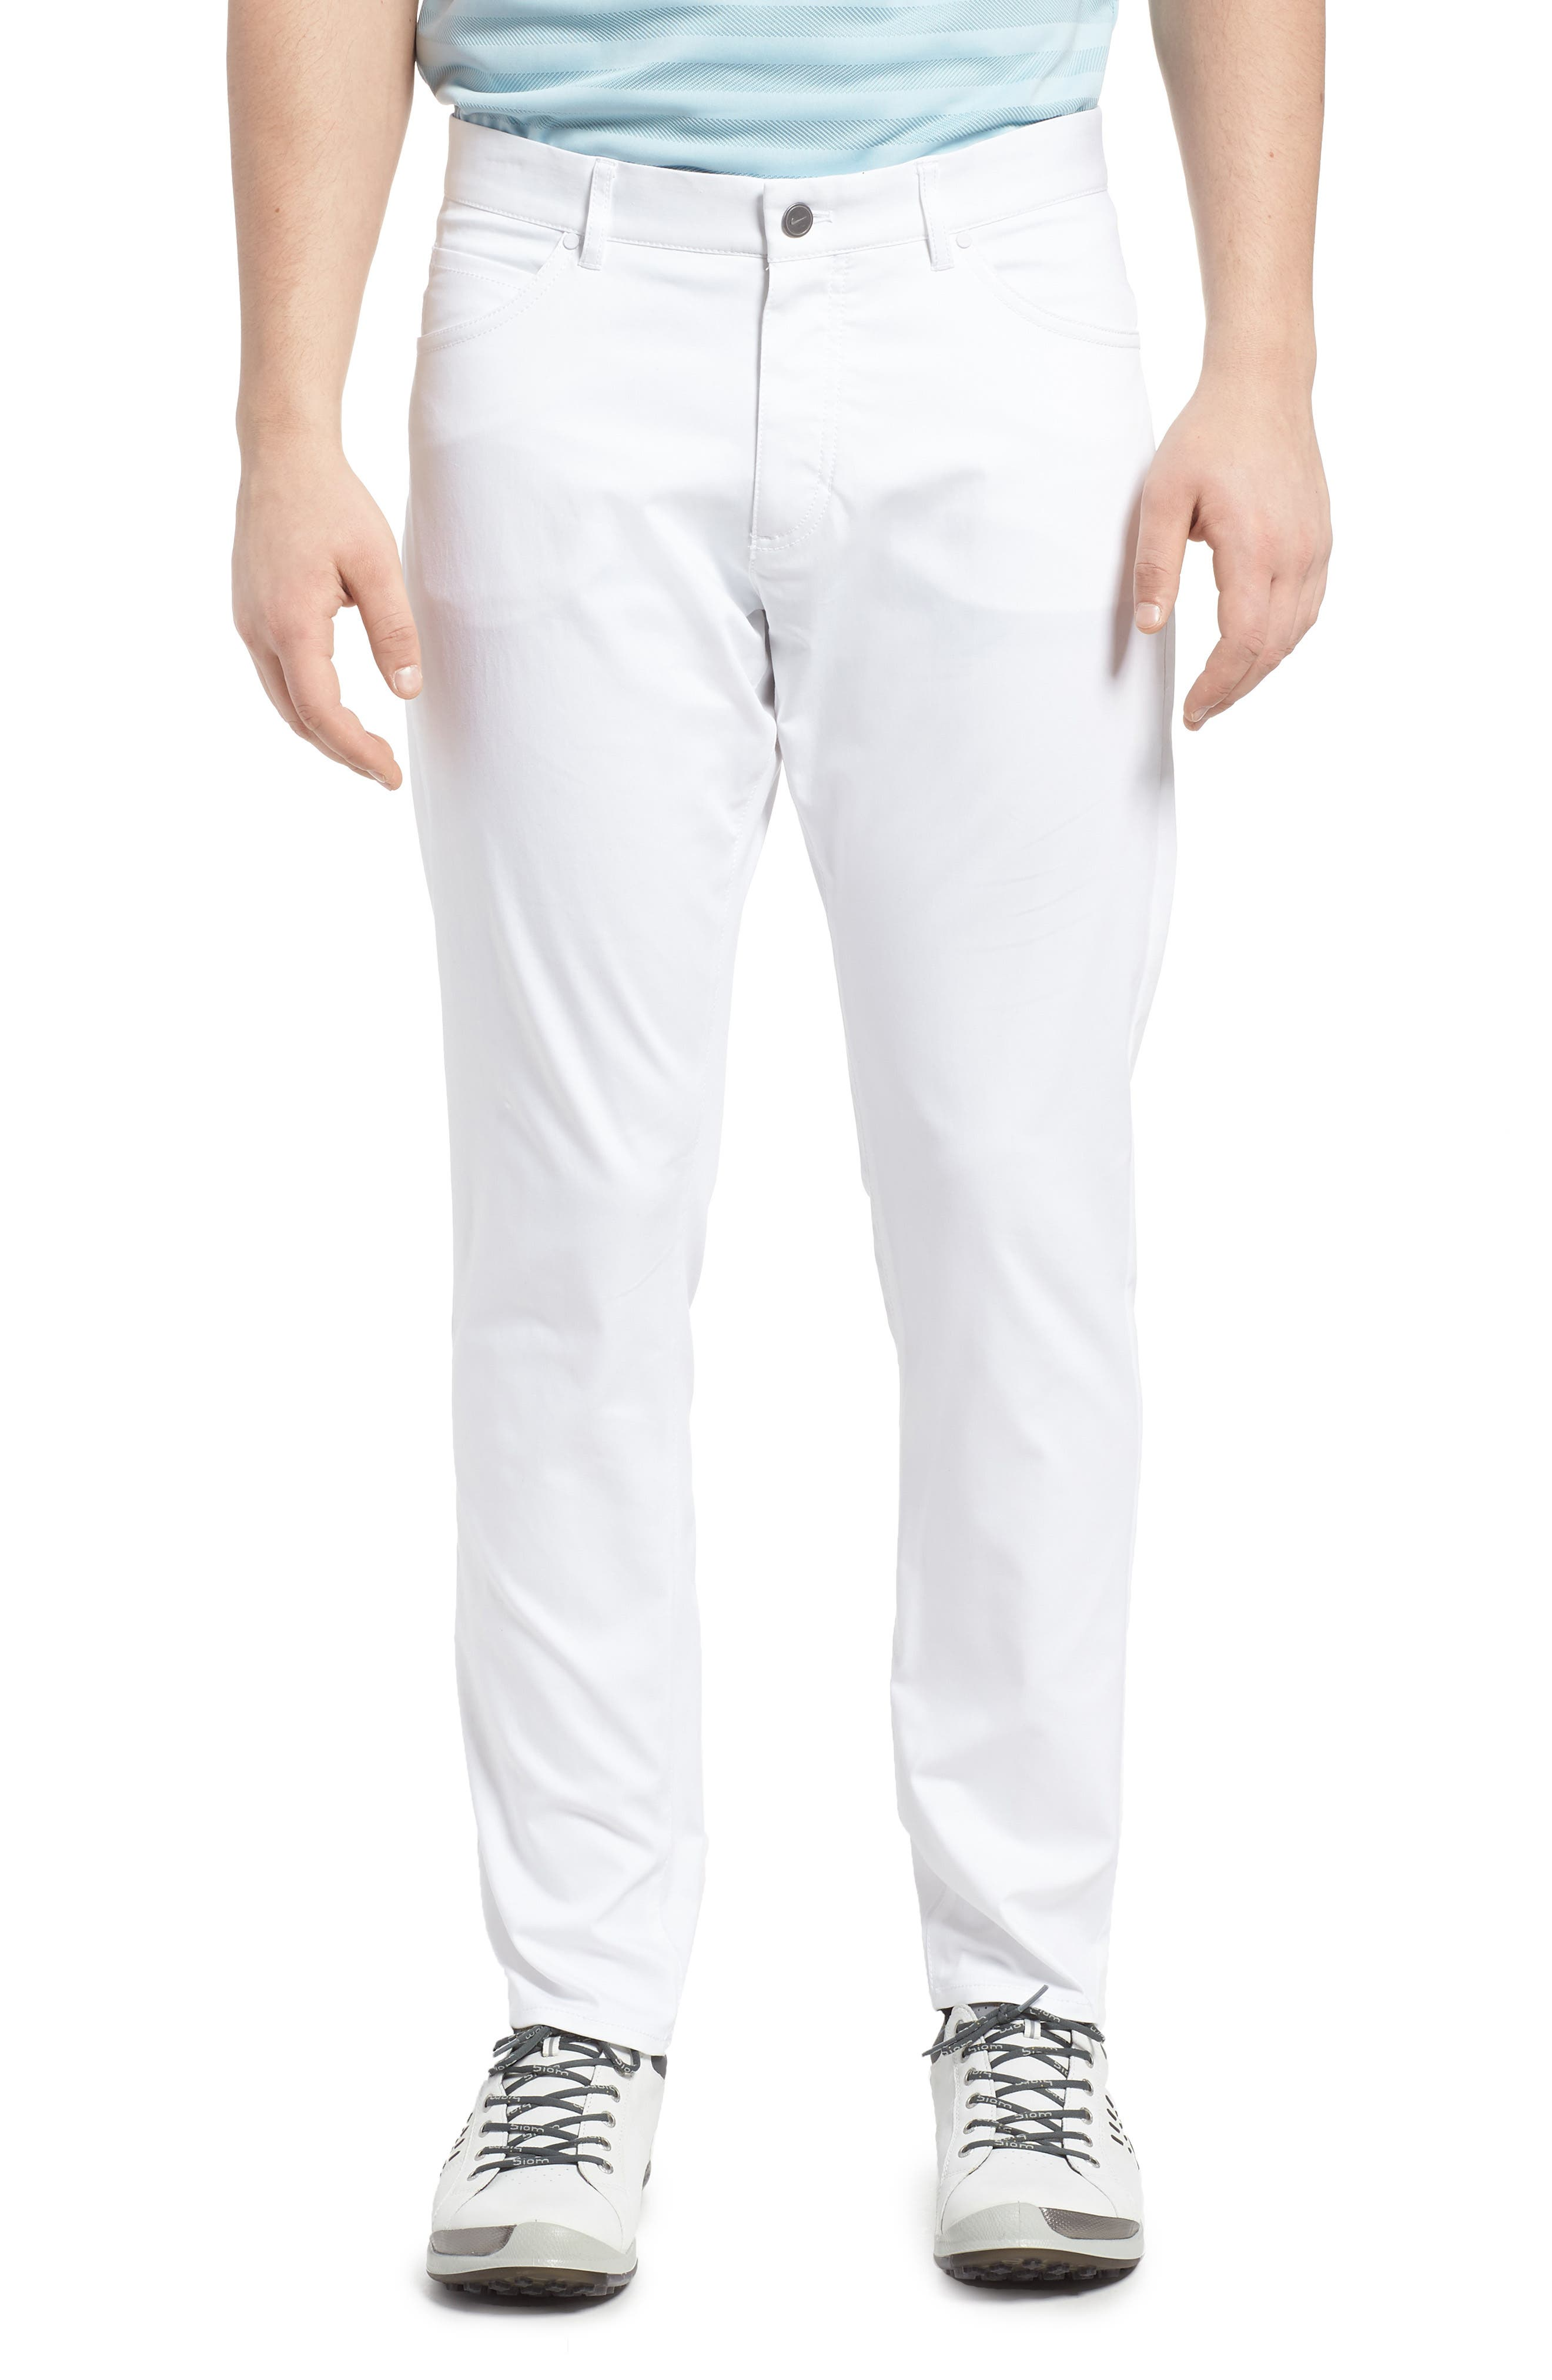 Dry Flex Slim Fit Golf Pants,                         Main,                         color, White/ White